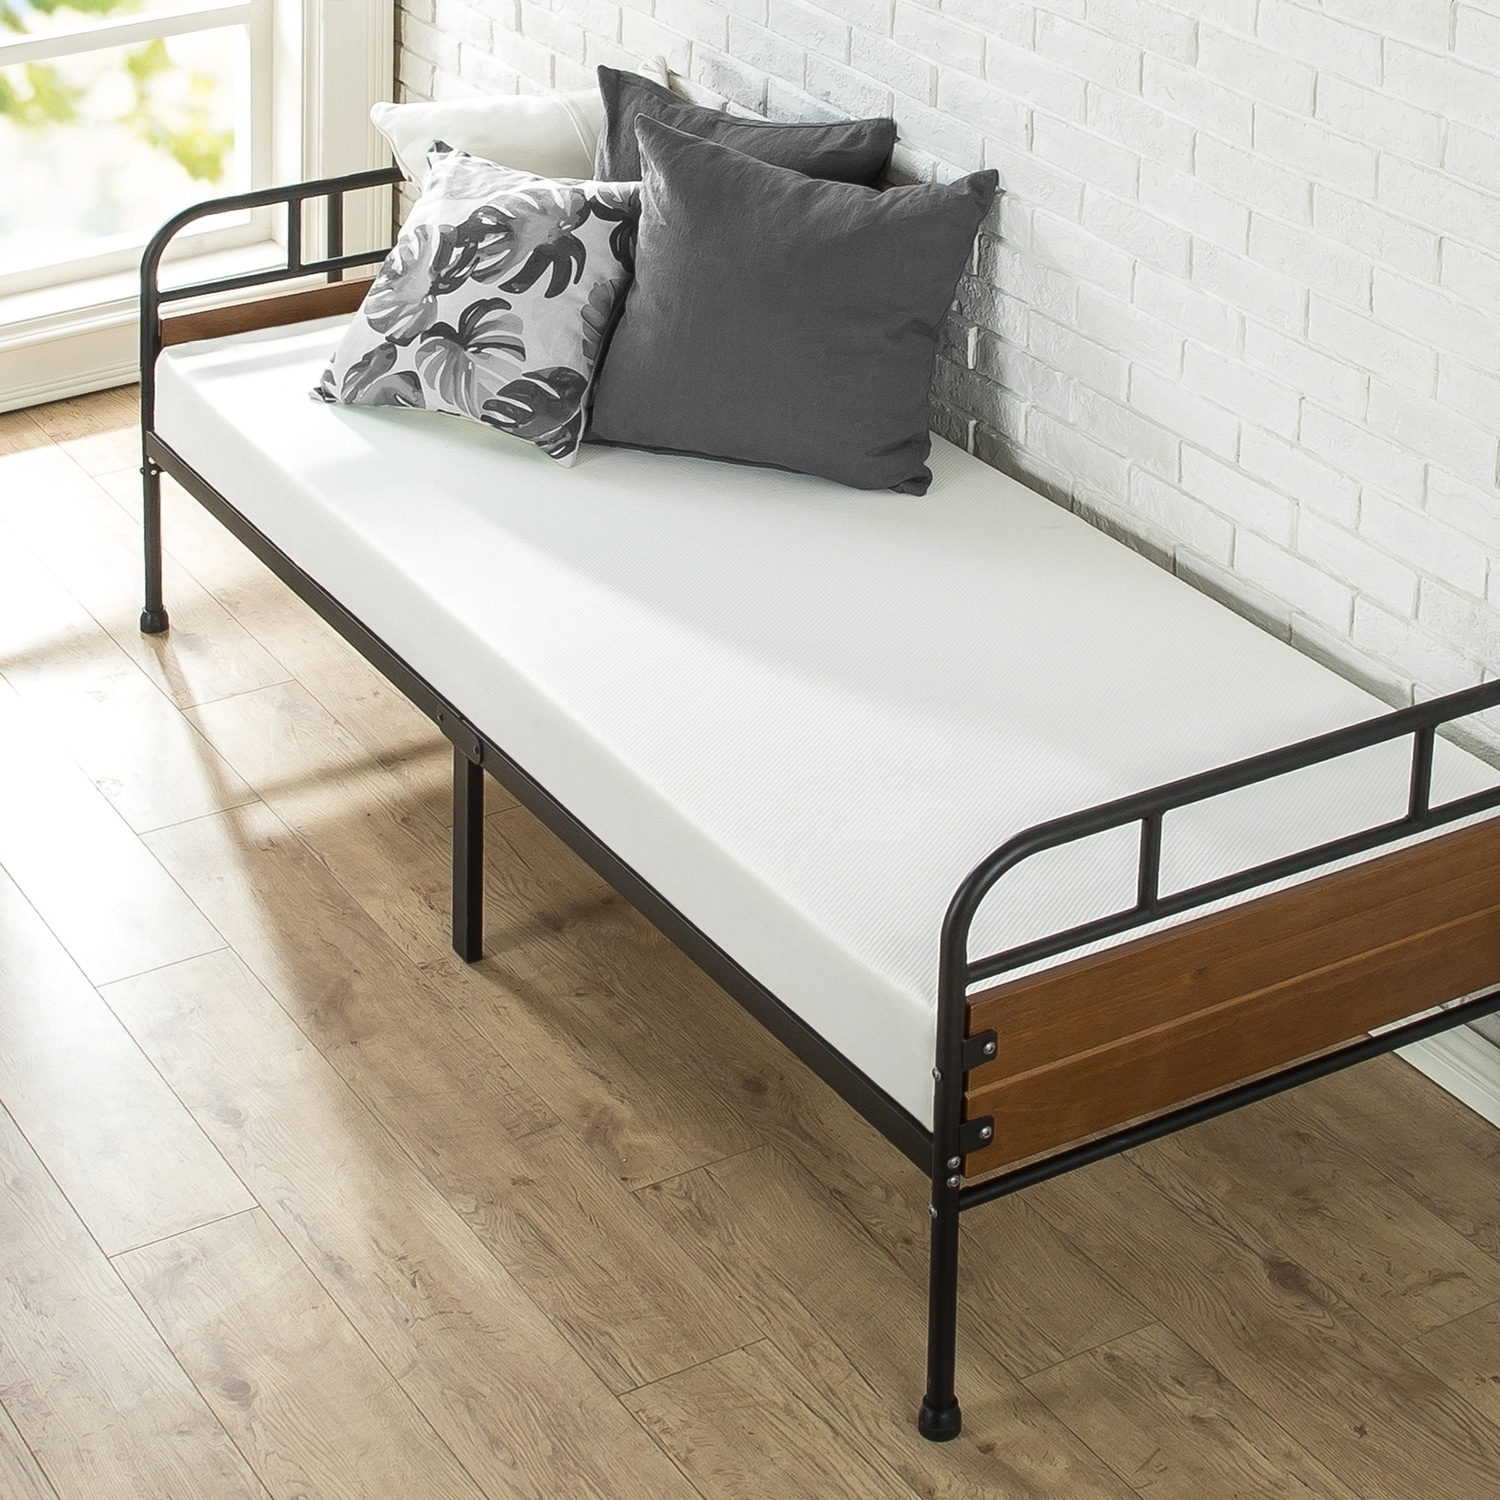 Shop Priage Santa Fe 30 Inch Narrow Size Day Bed Frame and Foam ...